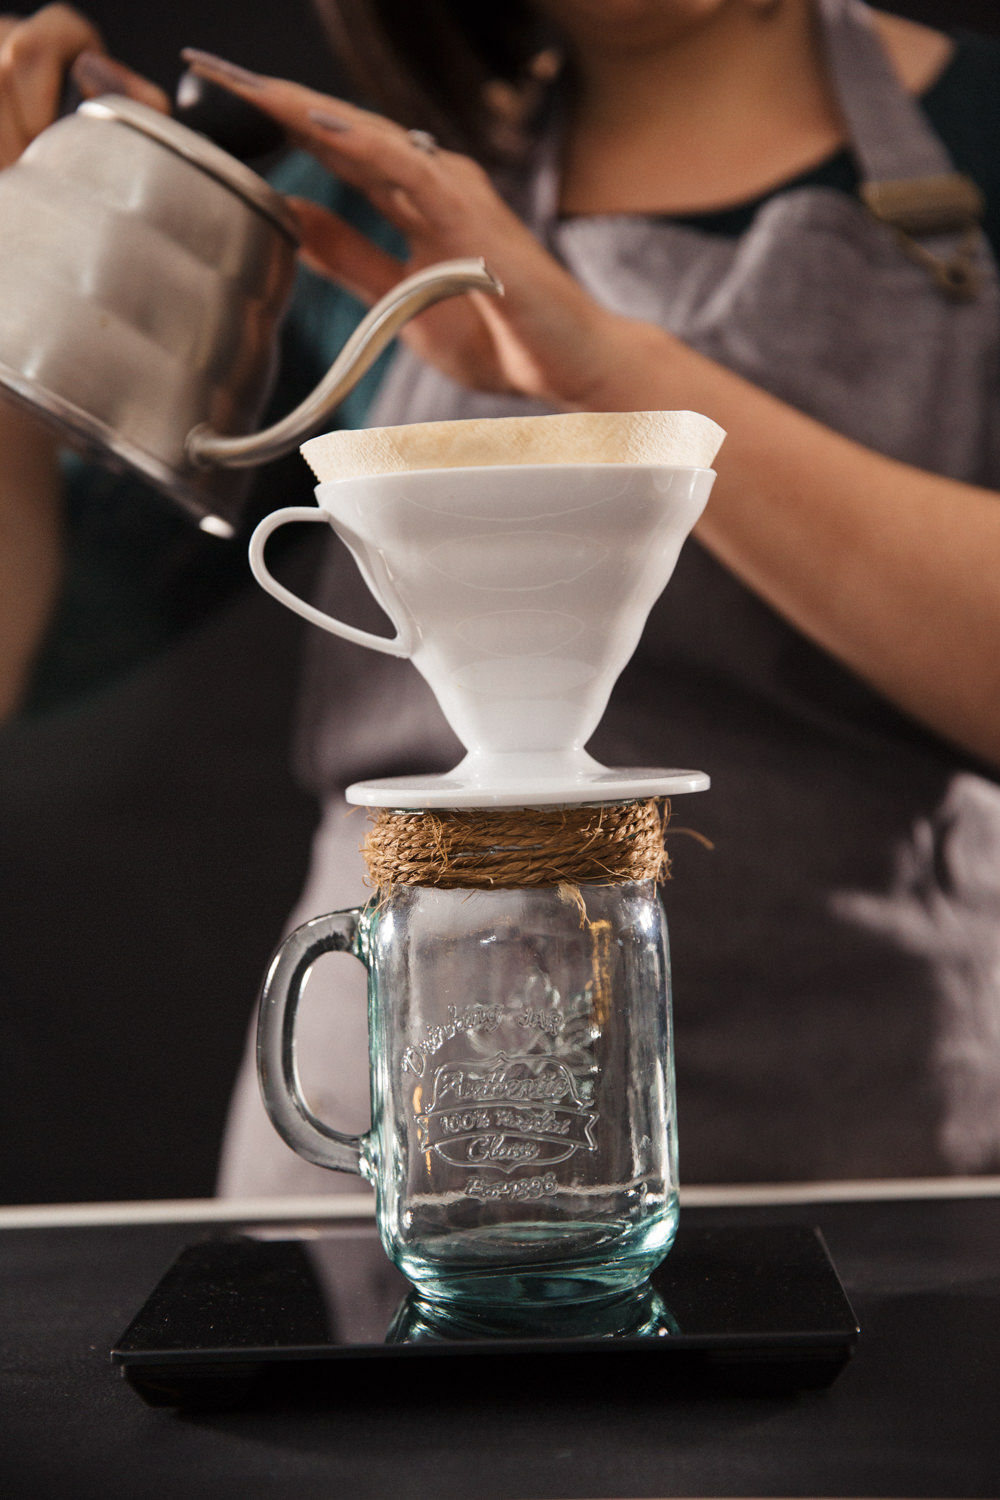 Something Brewed Mobile Coffee Bar & Afternoon Tea Caterers for hire: Weddings, Corporate & Events using Speciality Coffee.  Glasgow, Edinburgh & Scotland pouring V60 filter coffee into a vintage mason jar with twine